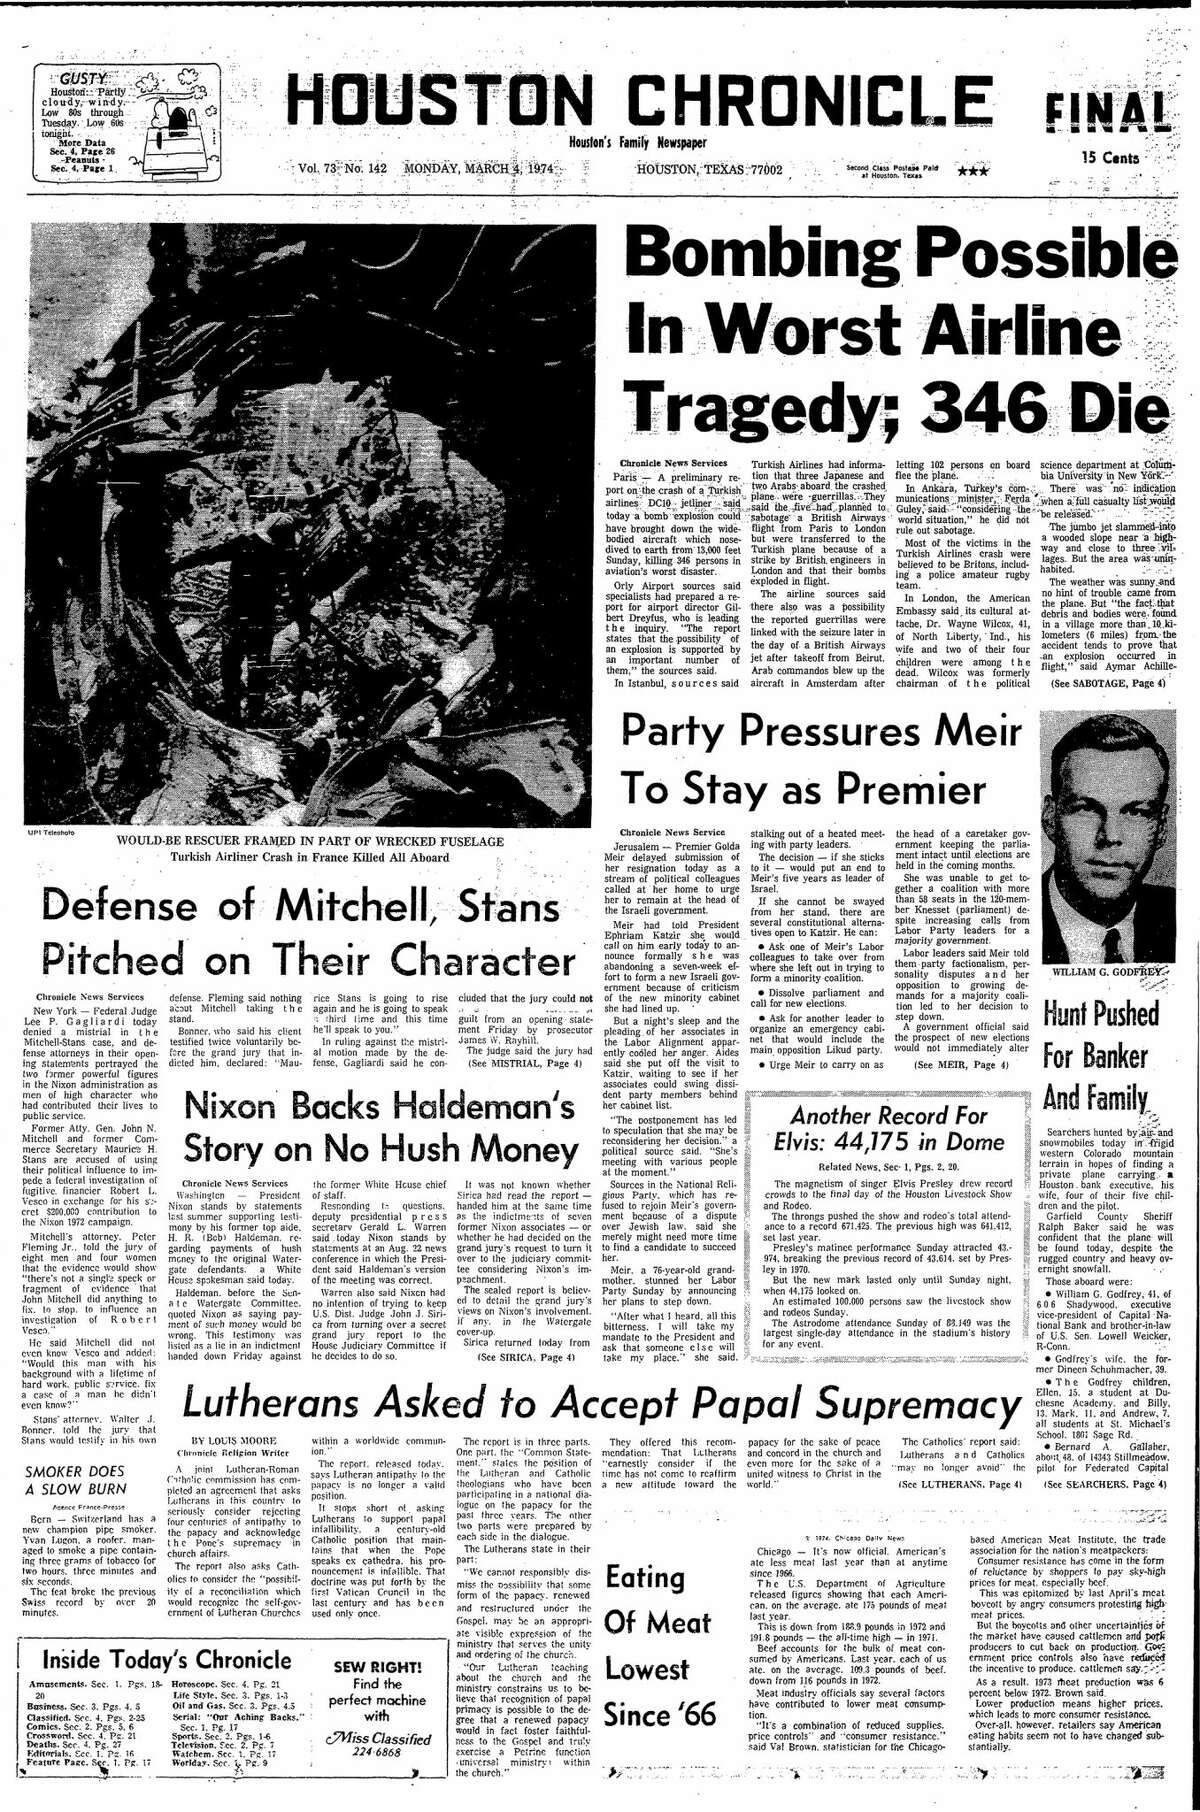 Houston Chronicle front page from March 4, 1974.